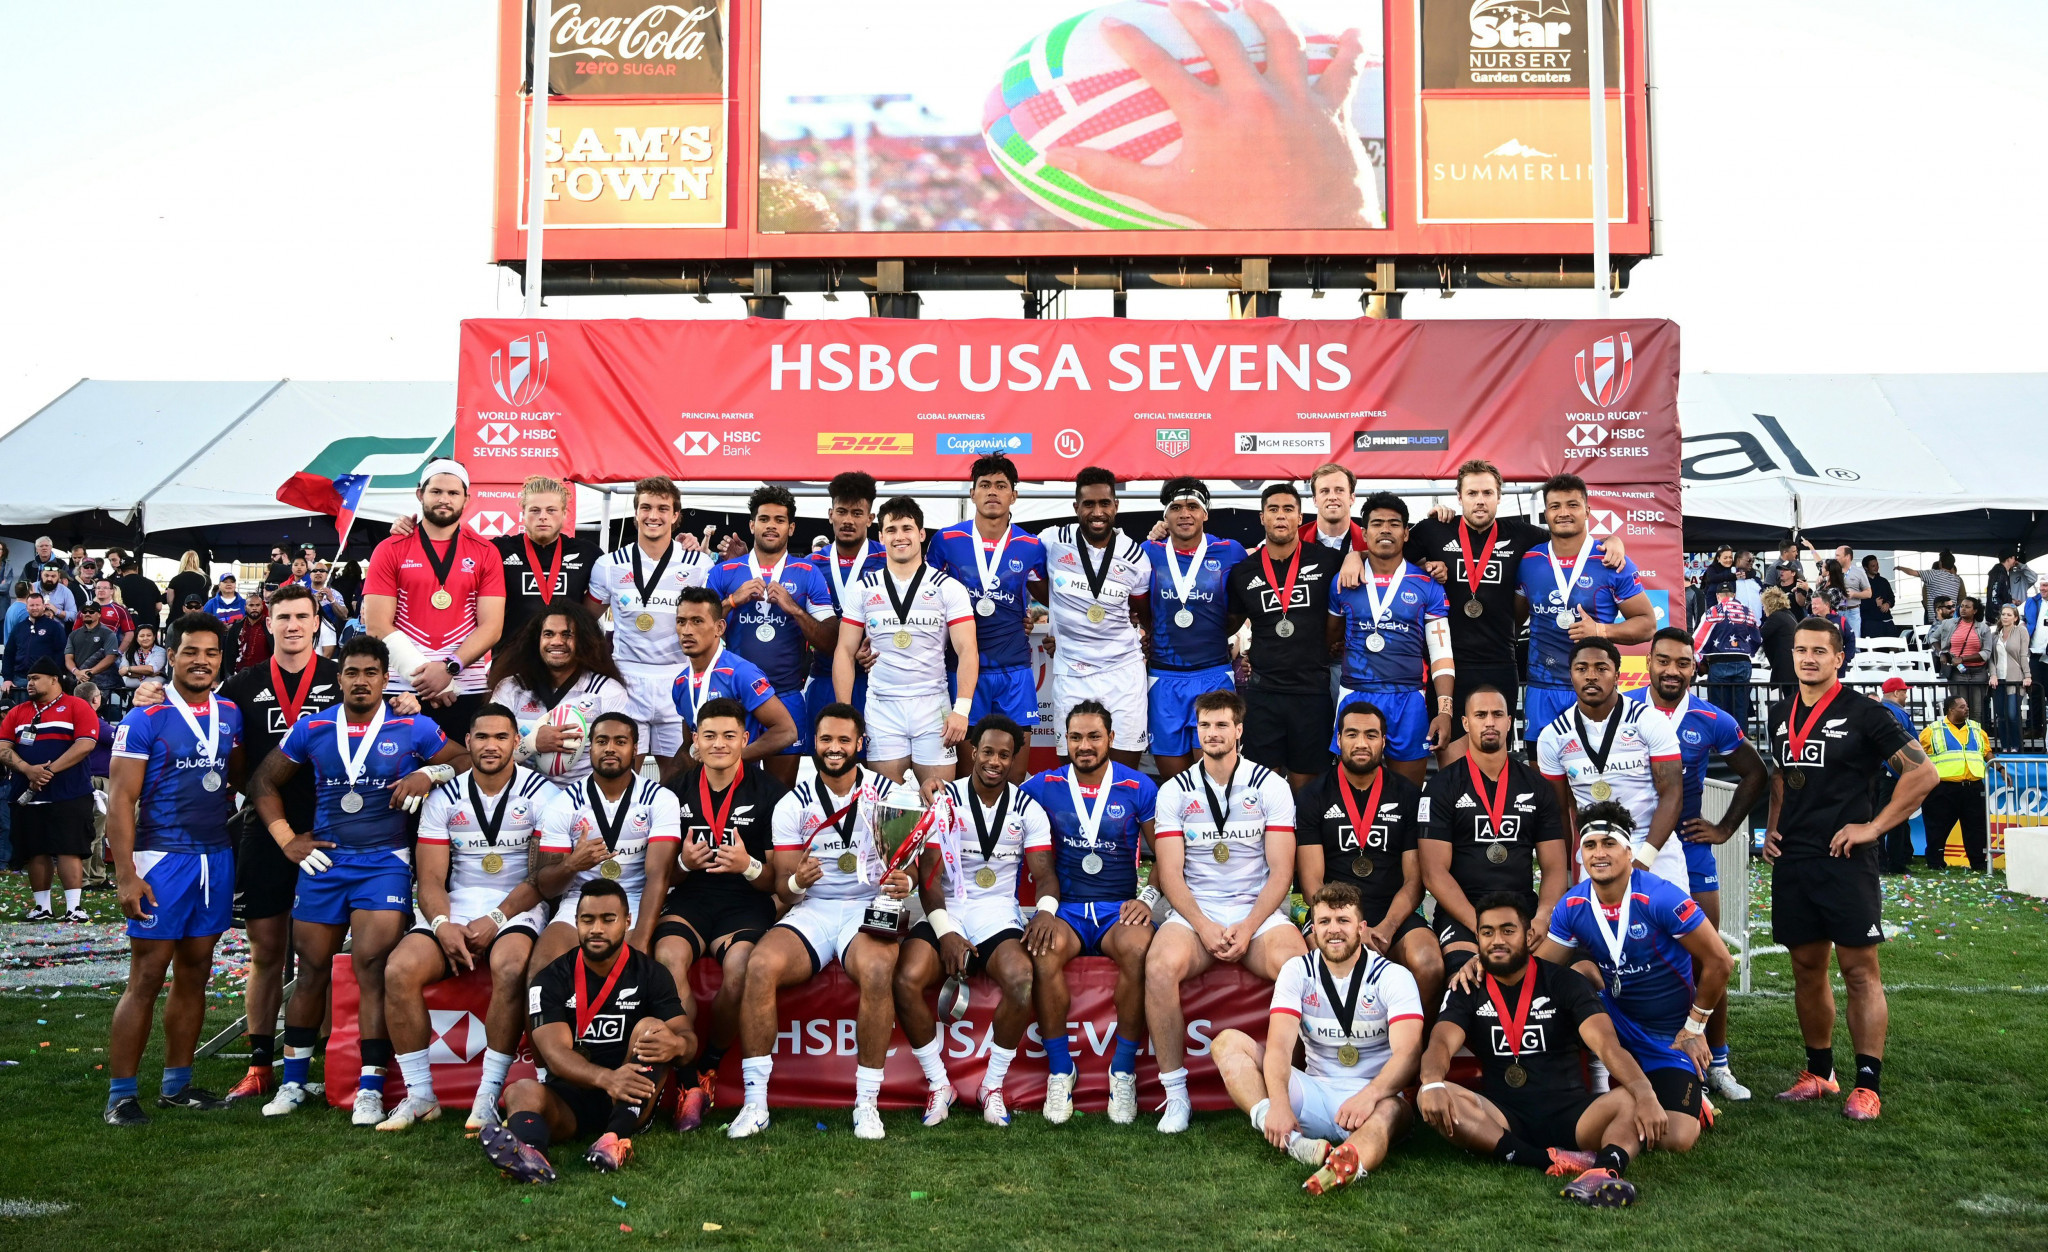 United States defeated Samoa 27-0 in the final of the Las Vegas Sevens event in March ©Getty Images